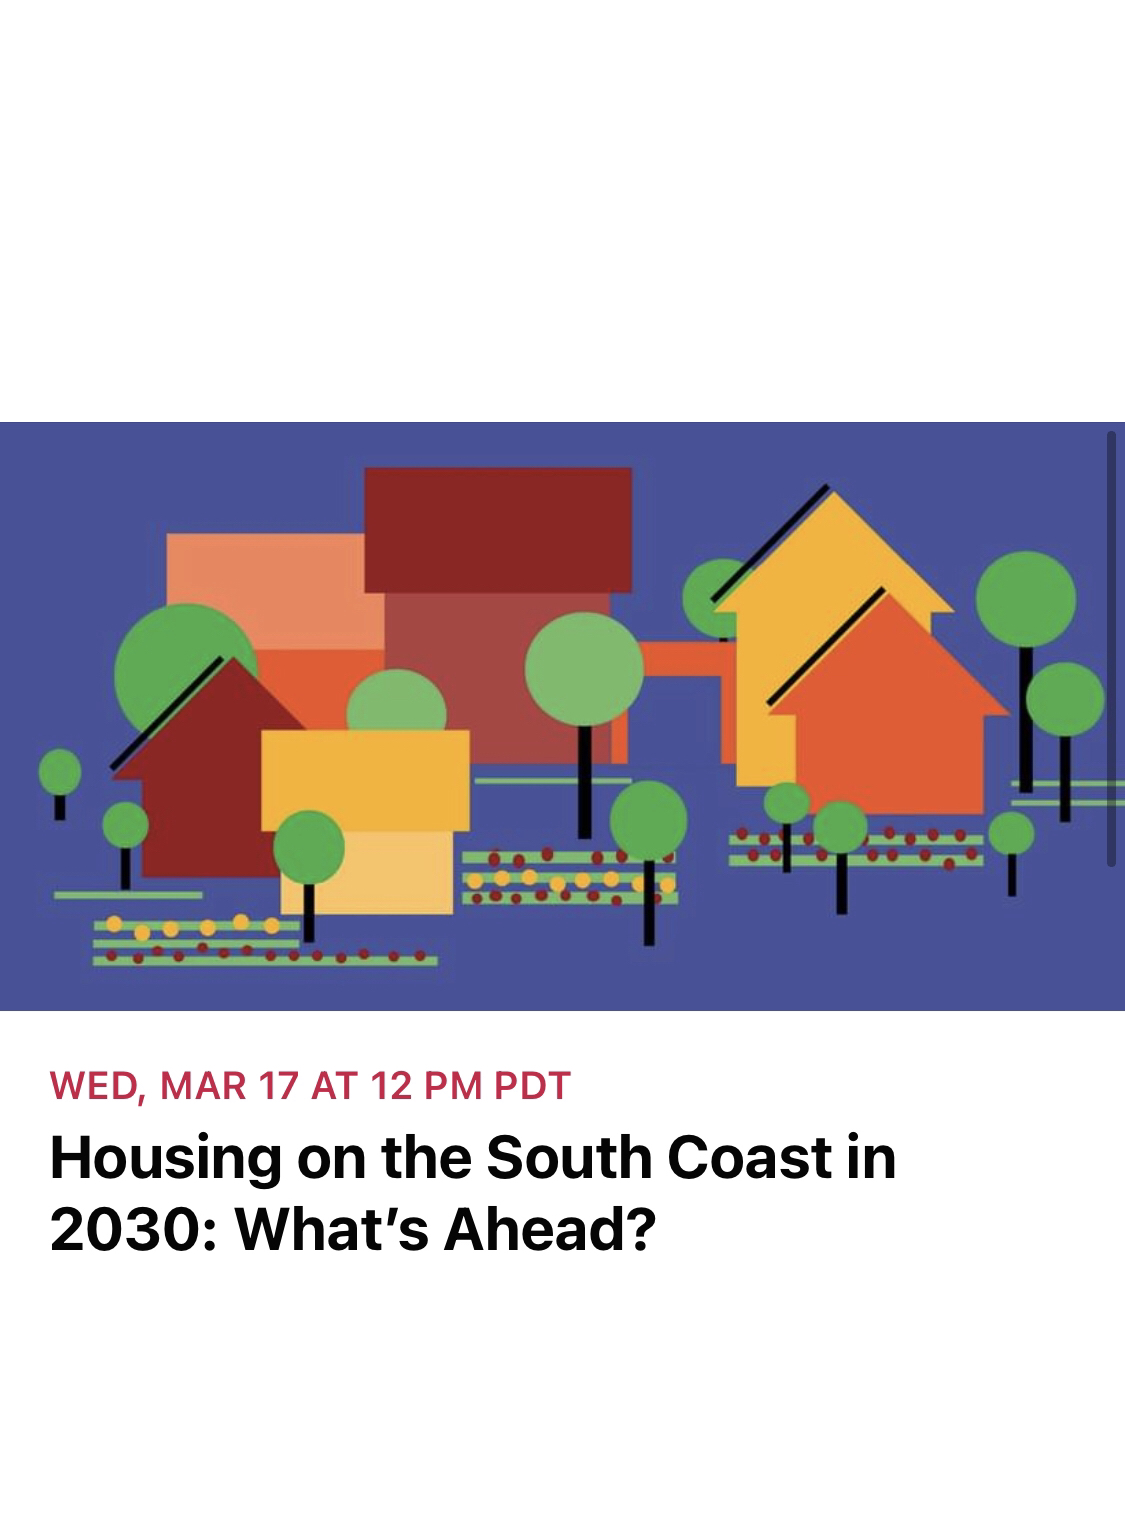 Housing on the South Coast in 2030: What's Ahead?